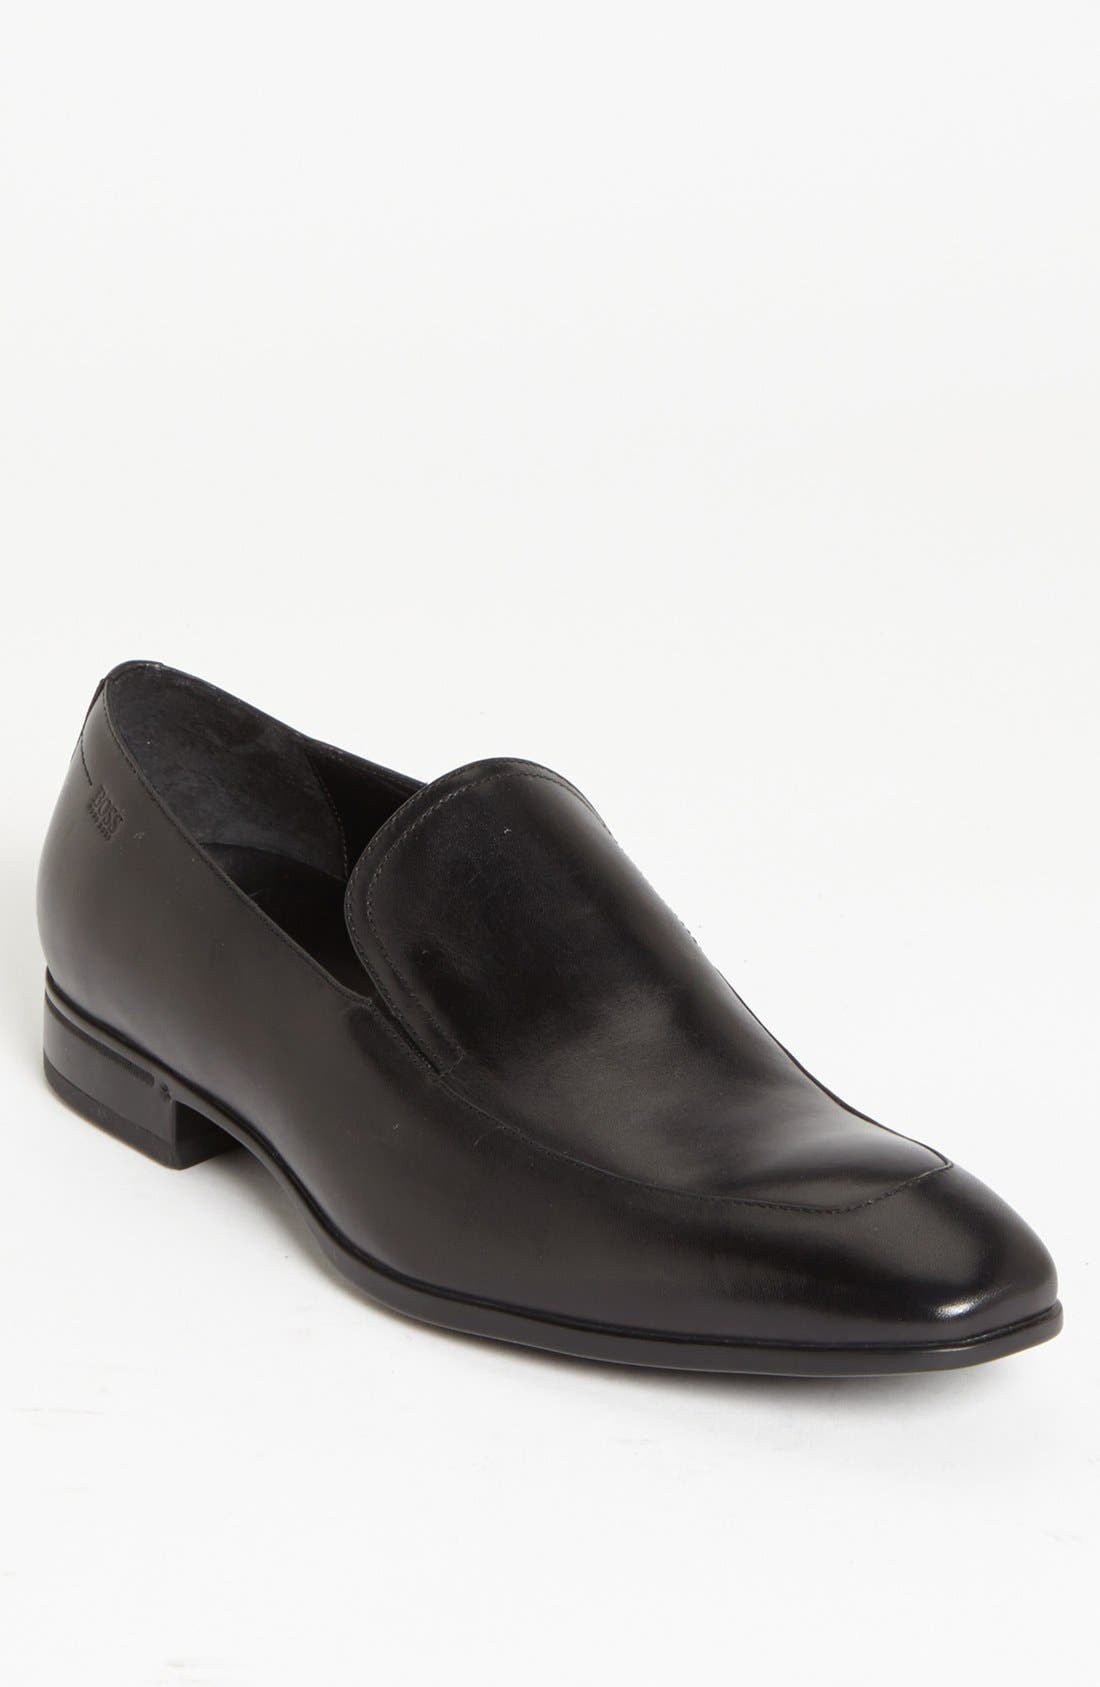 Main Image - BOSS HUGO BOSS 'Varmons' Apron Toe Loafer (Men)